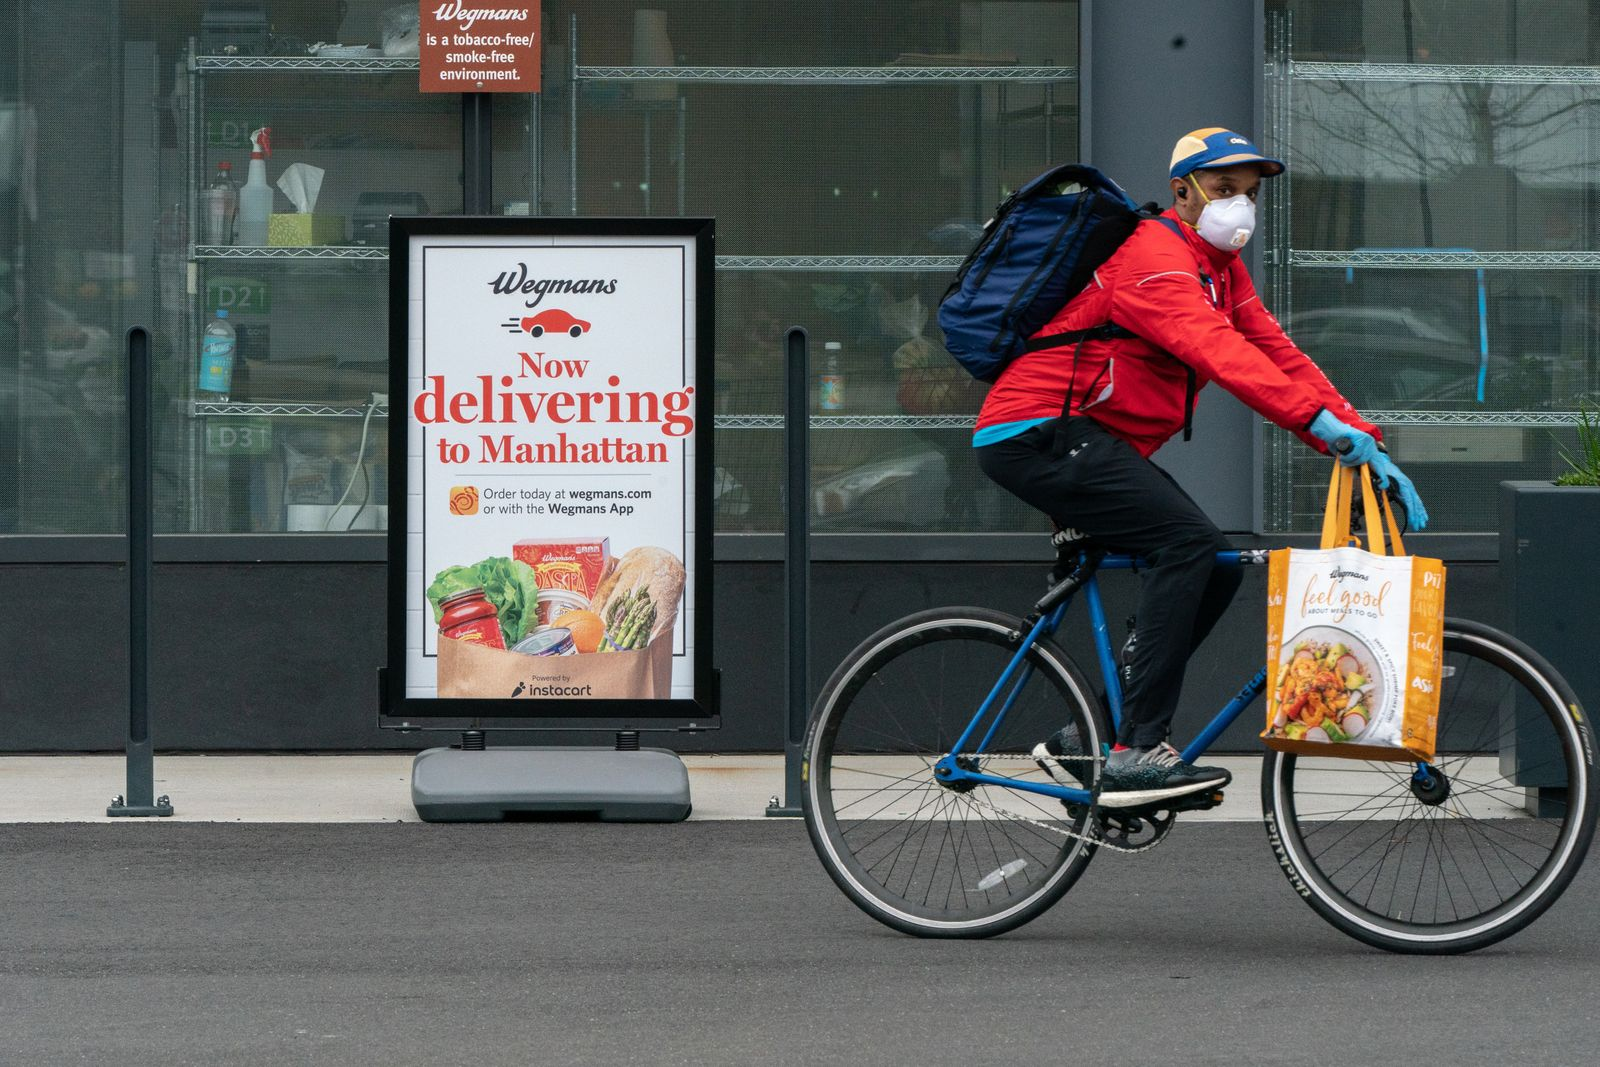 Wegmans grocery store in Brooklyn offers delivery during the coronavirus pandemic, March 30, 2020. (Jeenah Moon/The New York Times)